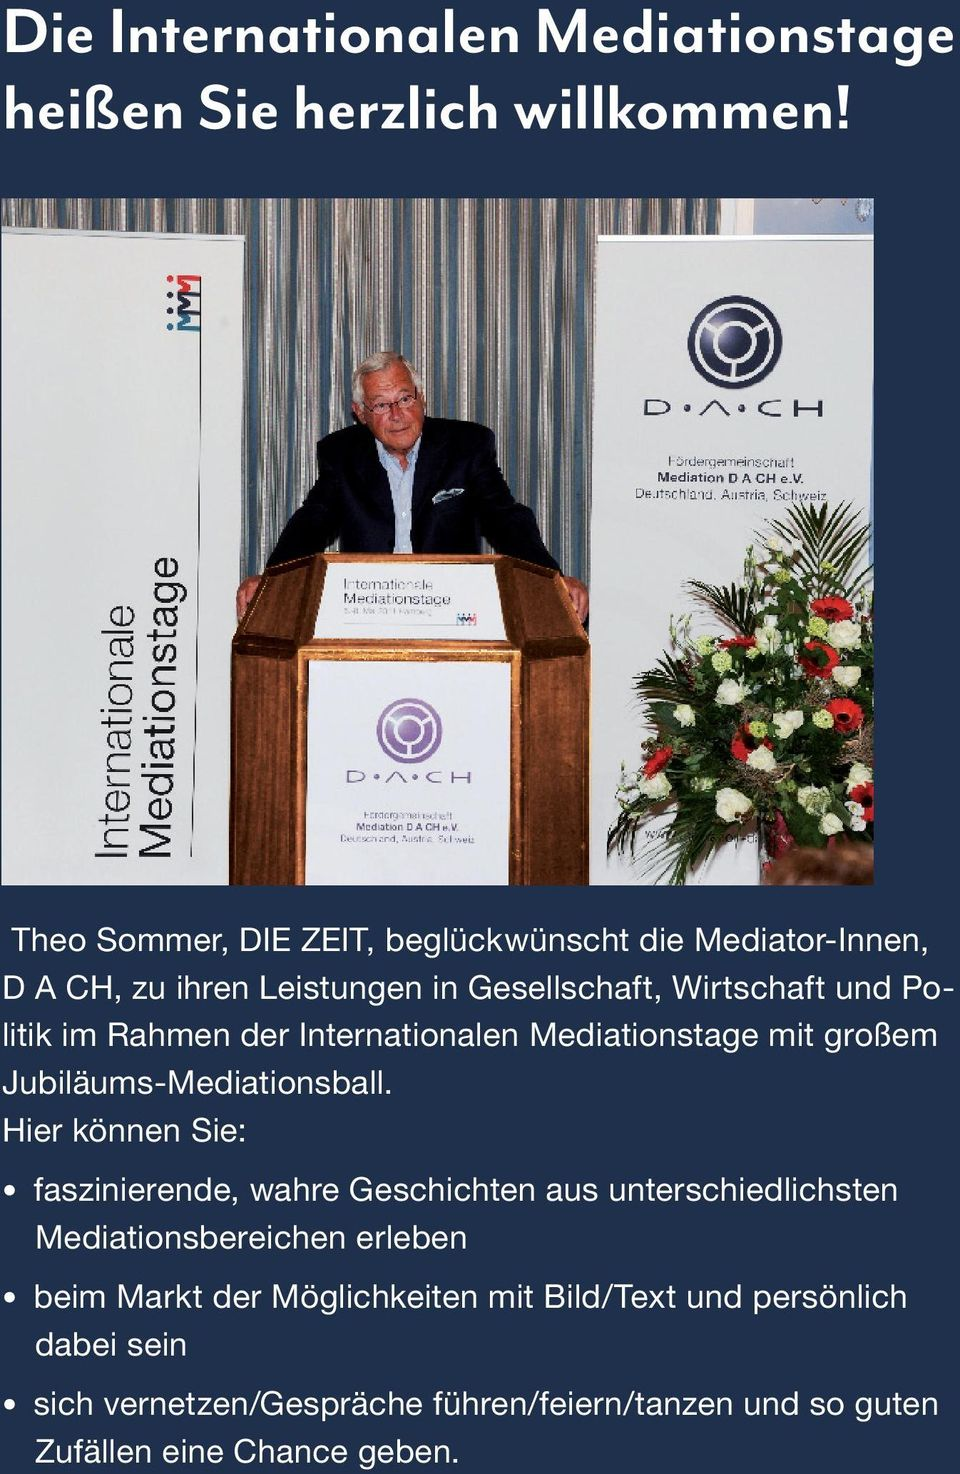 Rahmen der Internationalen Mediationstage mit großem Jubiläums-Mediationsball.